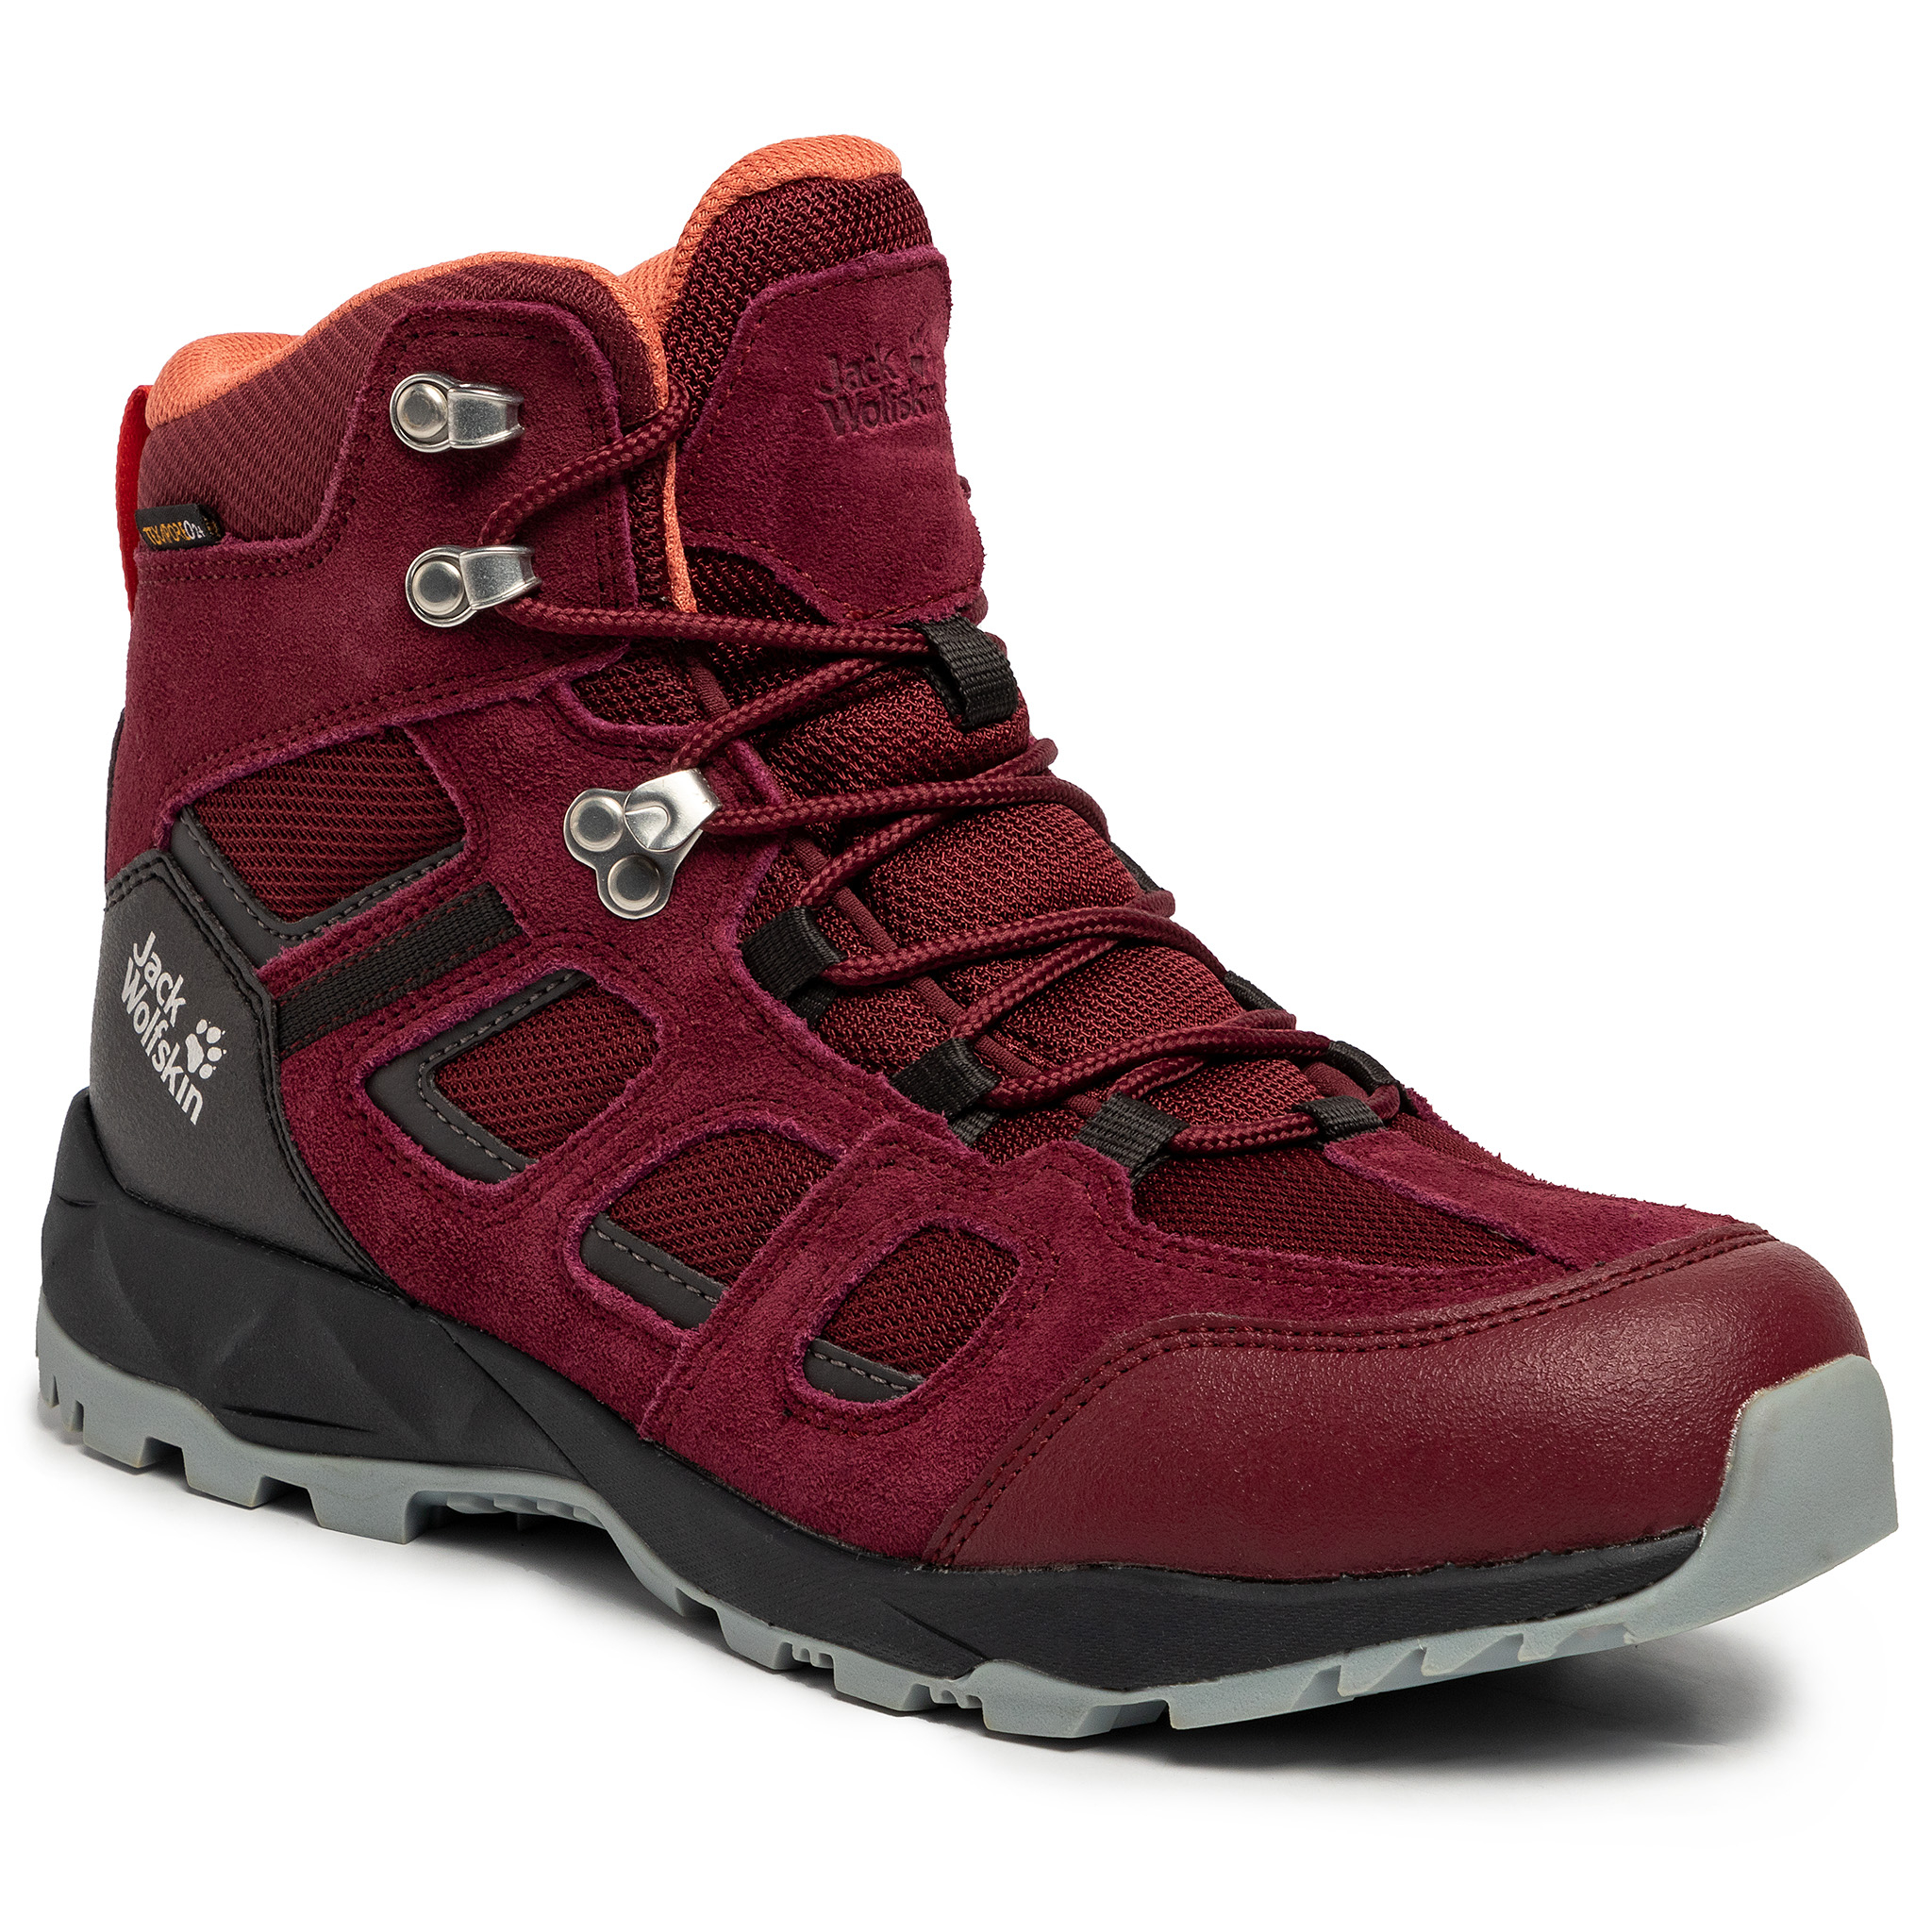 Trekkings Jack Wolfskin - Vojo Hike Xt Texapore Mid W 4035571 Burgundy/Phantom imagine epantofi.ro 2021